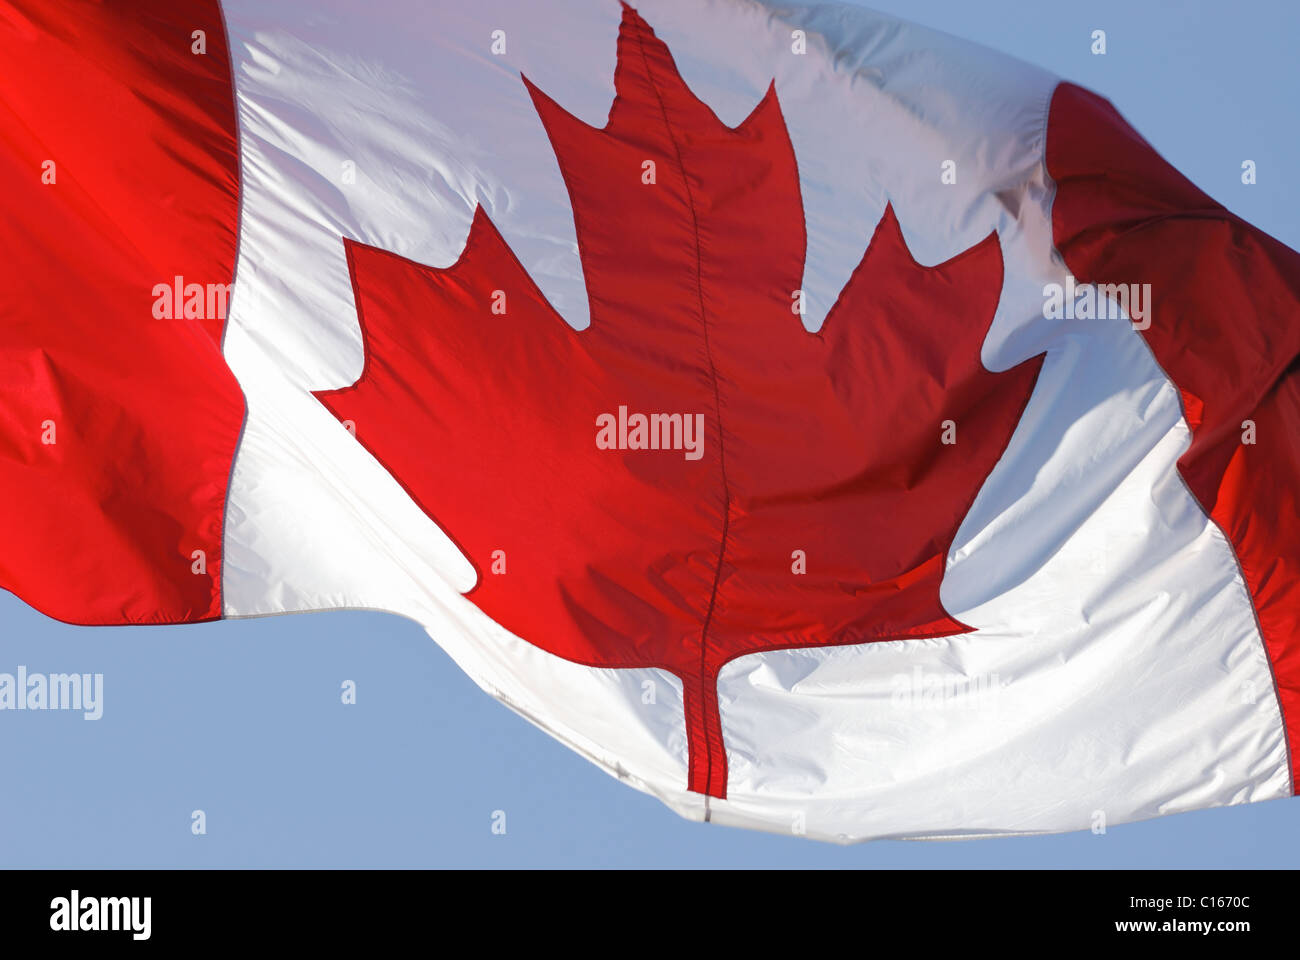 Close-up of the Canadian flag fluttering in the wind. - Stock Image